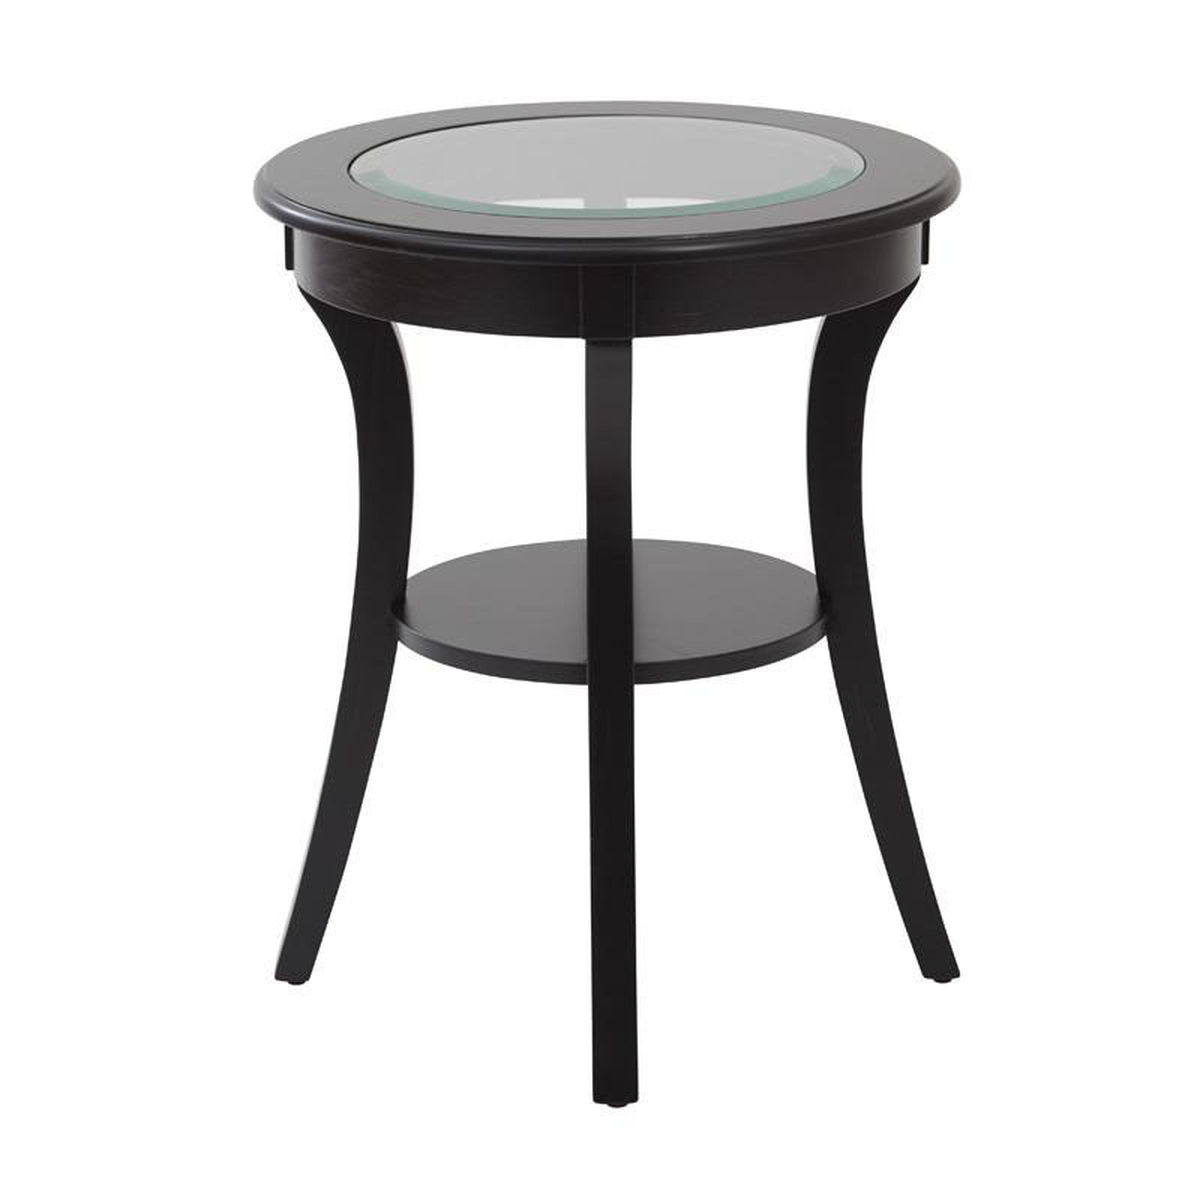 harper black glass accent table bizchair office star products with shelf our osp designs round top wood finish and stacking tables trestle furniture corner storage chest white